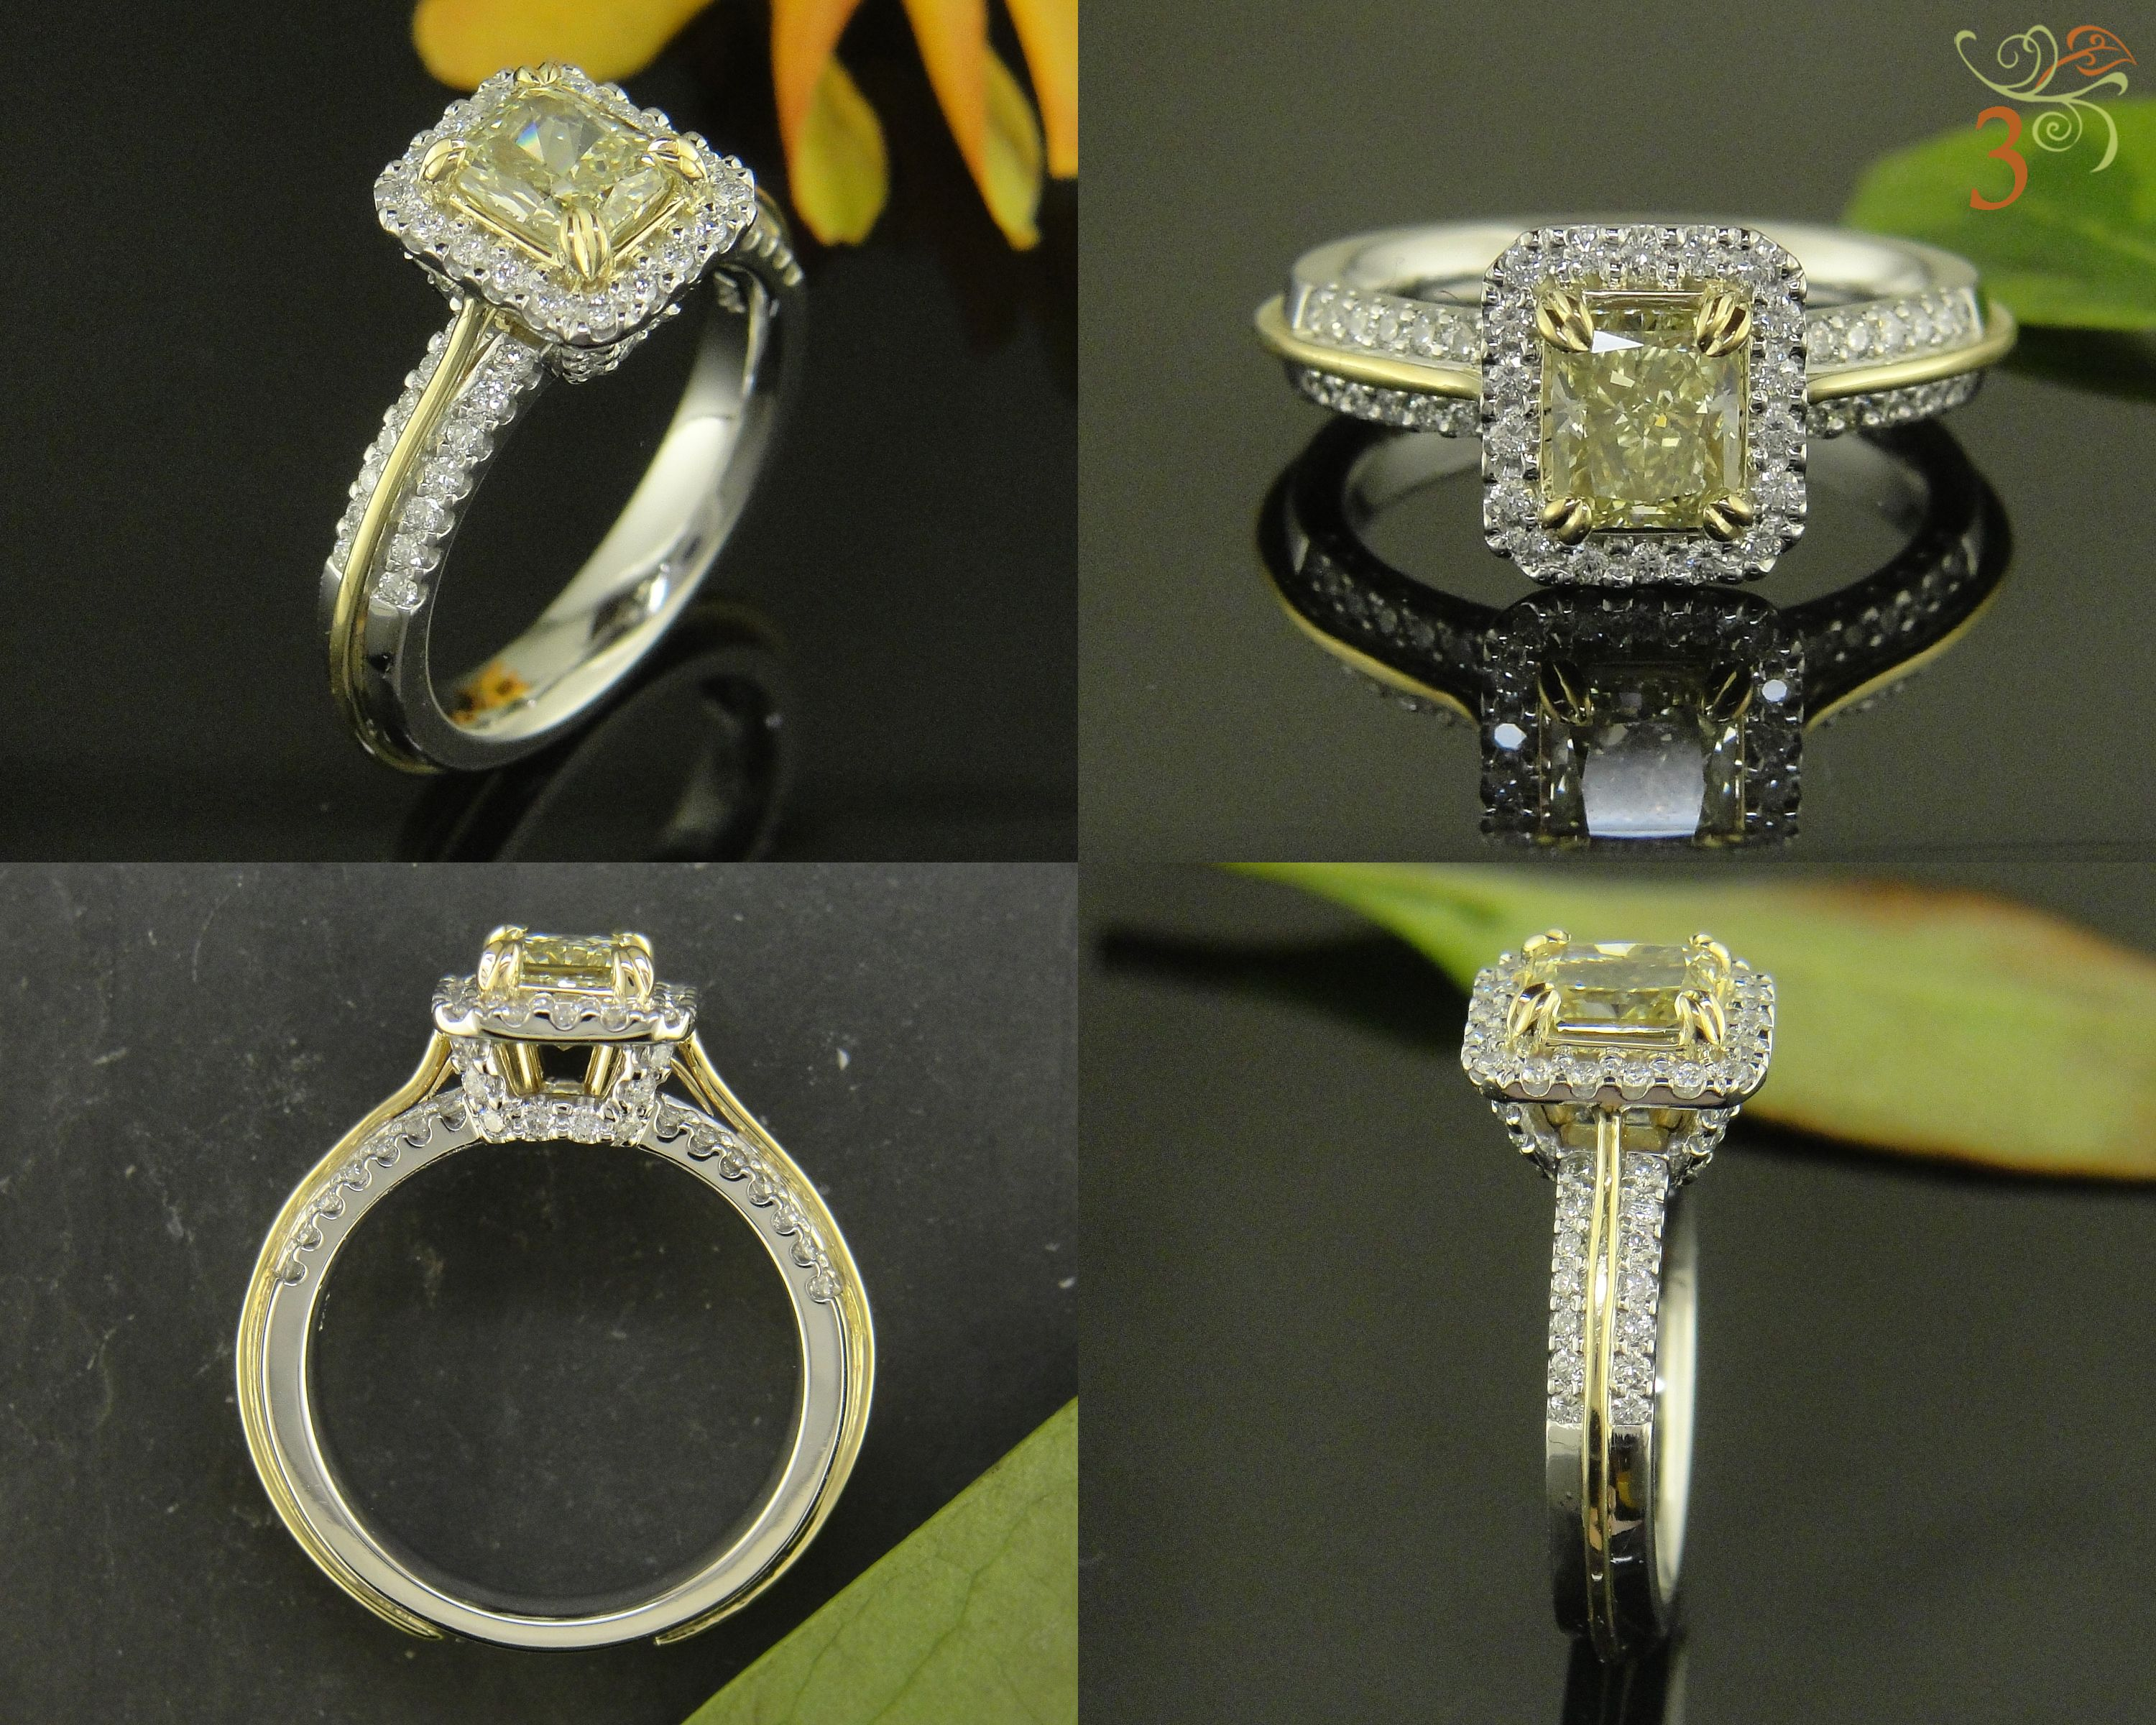 engagement overstock gold shipping rings month miadora sapphire watches free diamond product and ffbb today created white ring tdw jewelry